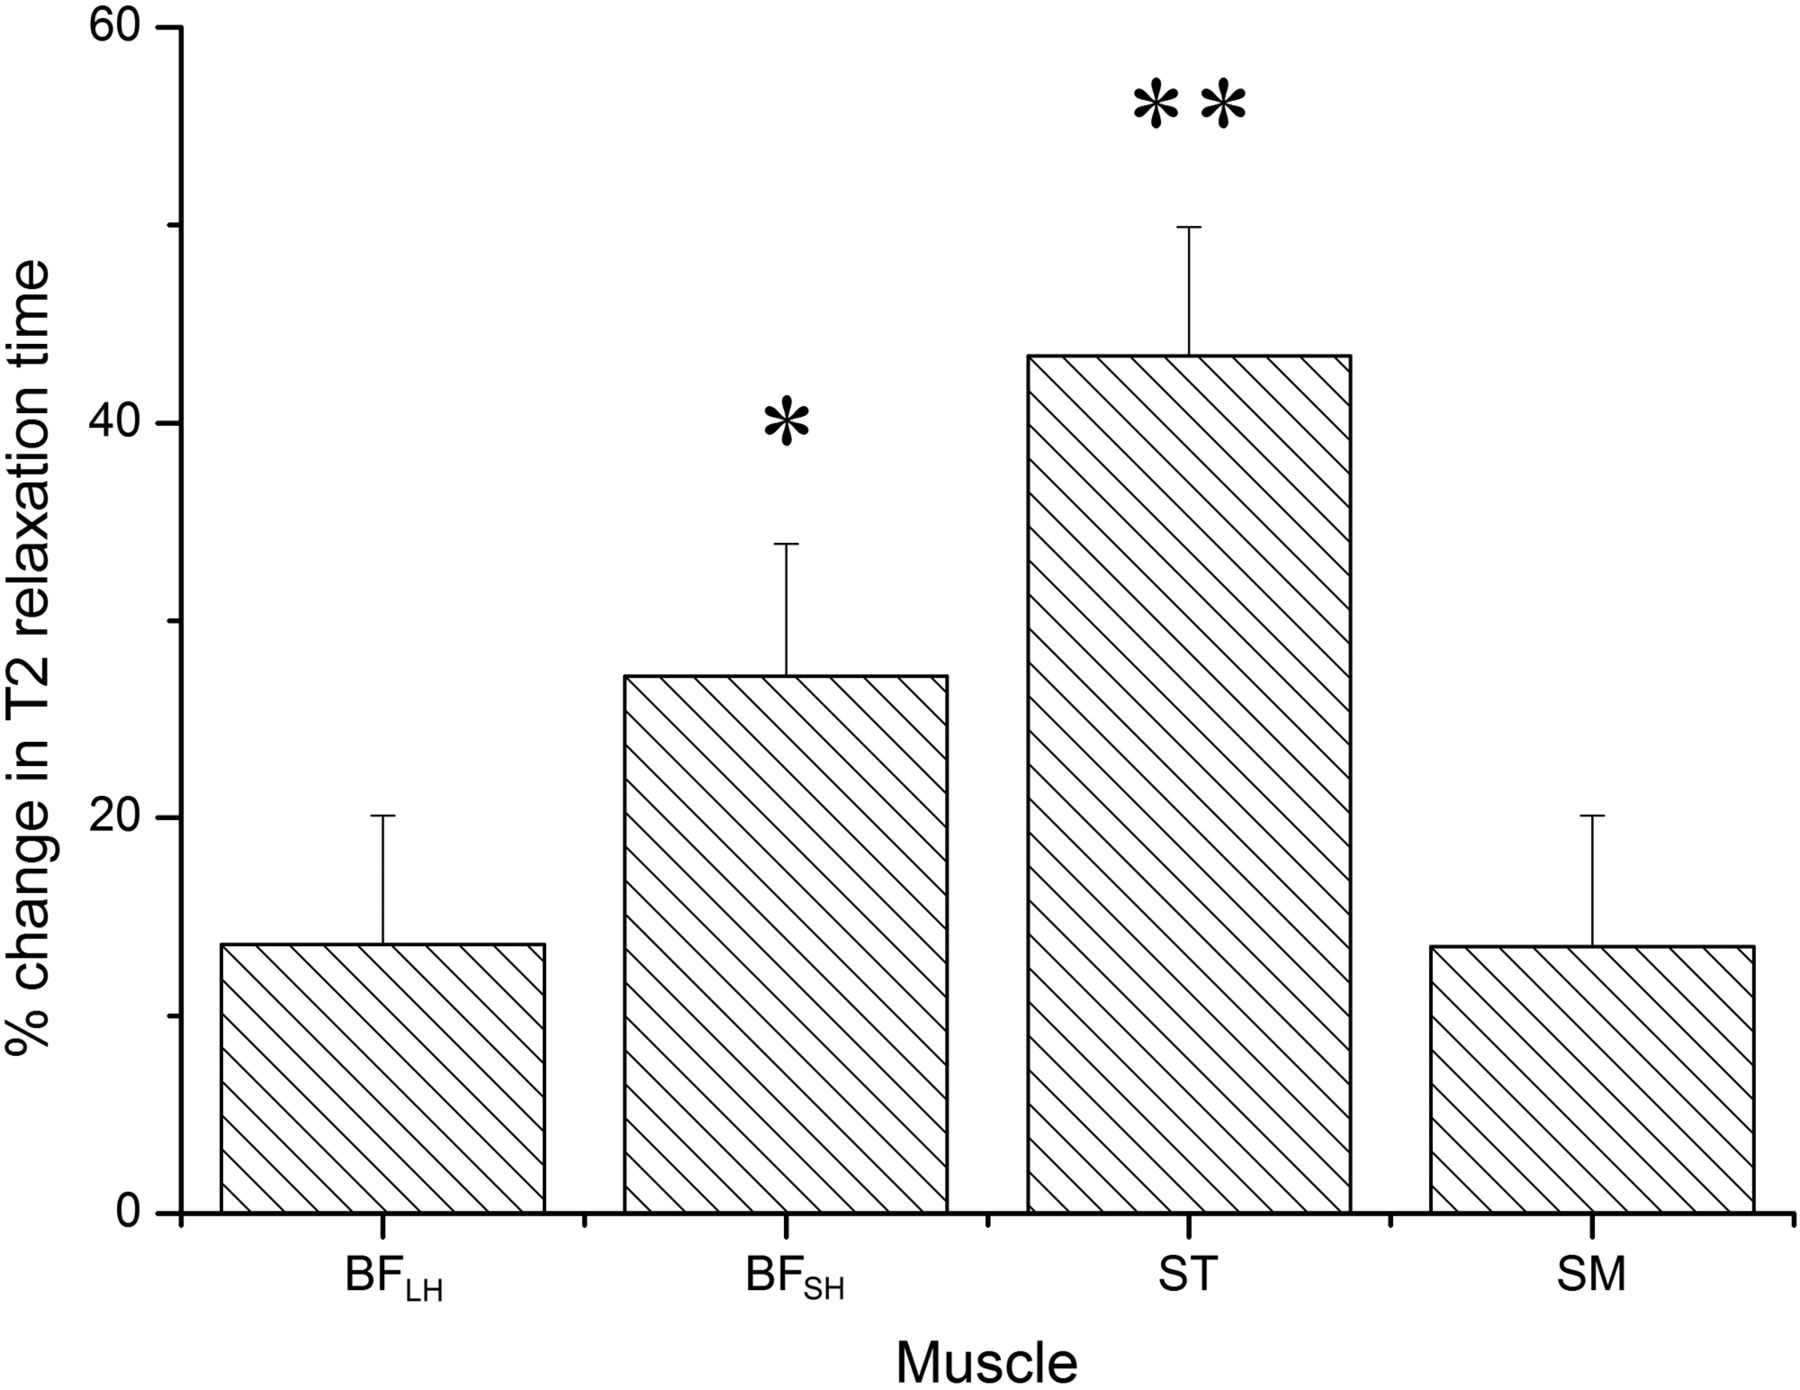 Impact Of Exercise Selection On Hamstring Muscle Activation